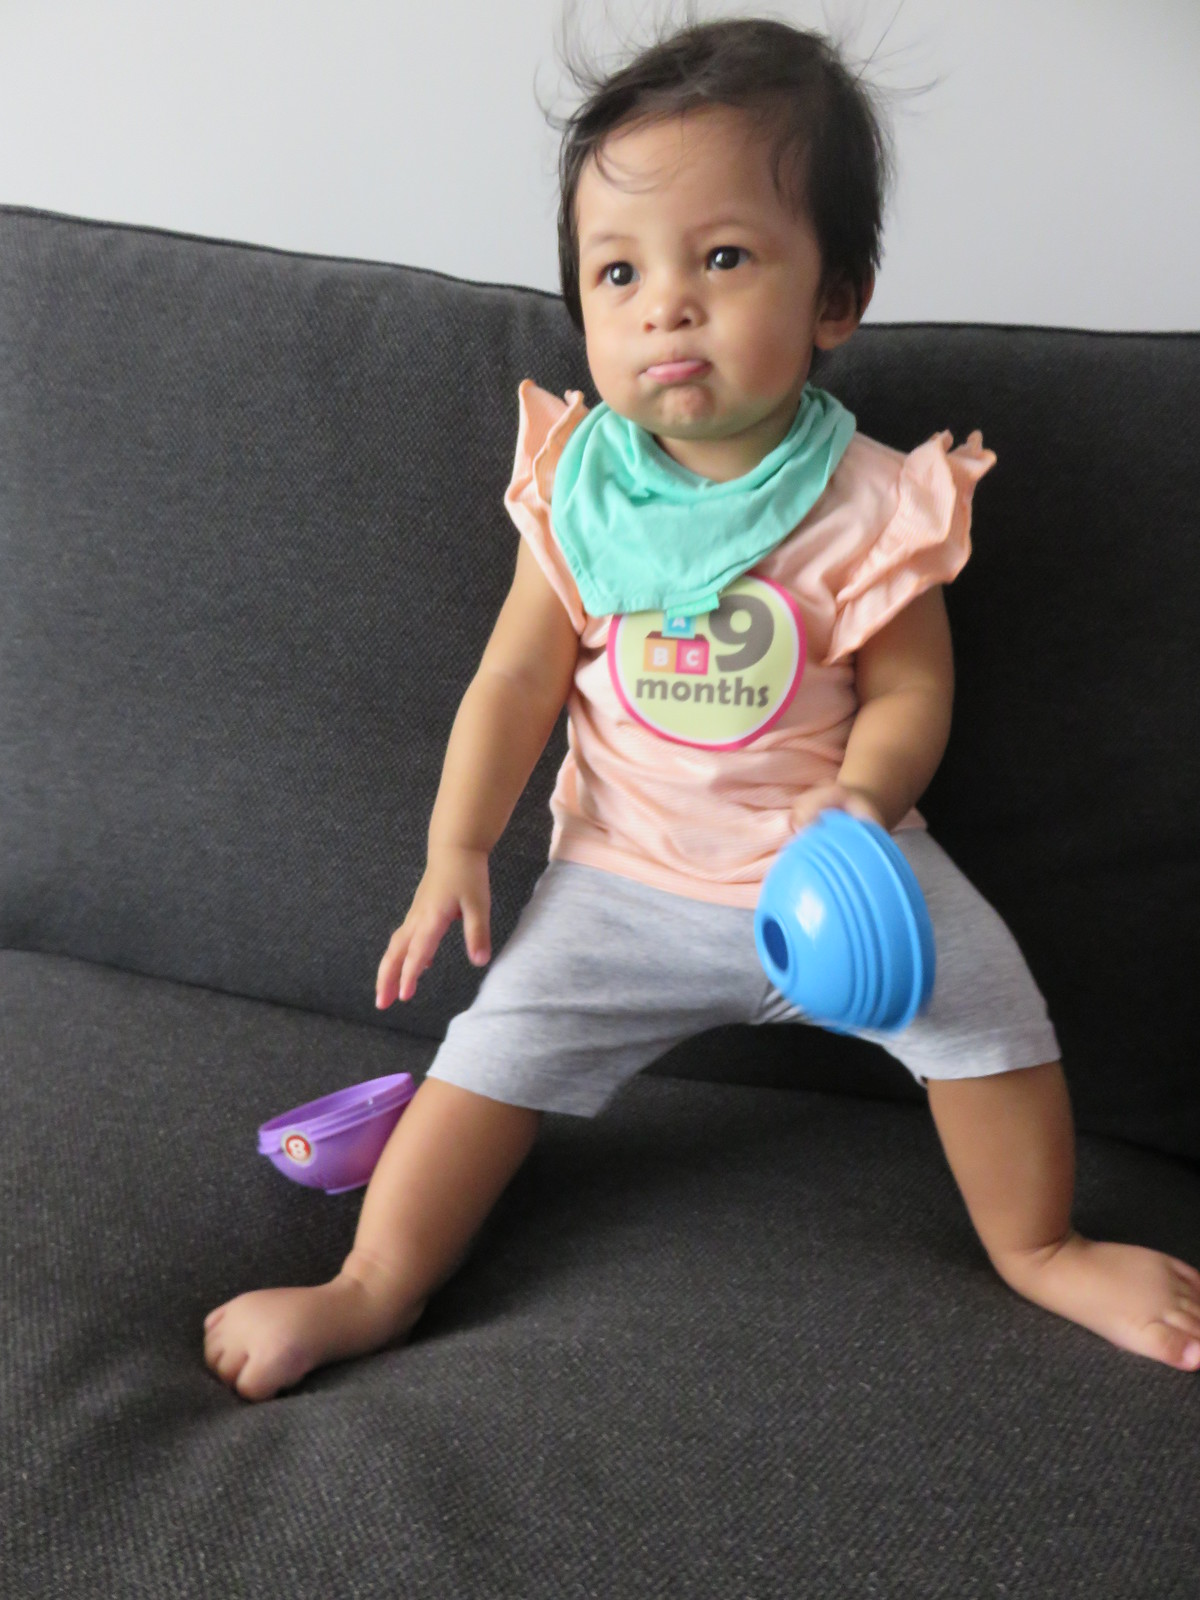 1 June 2014 - Zara at 9+ month